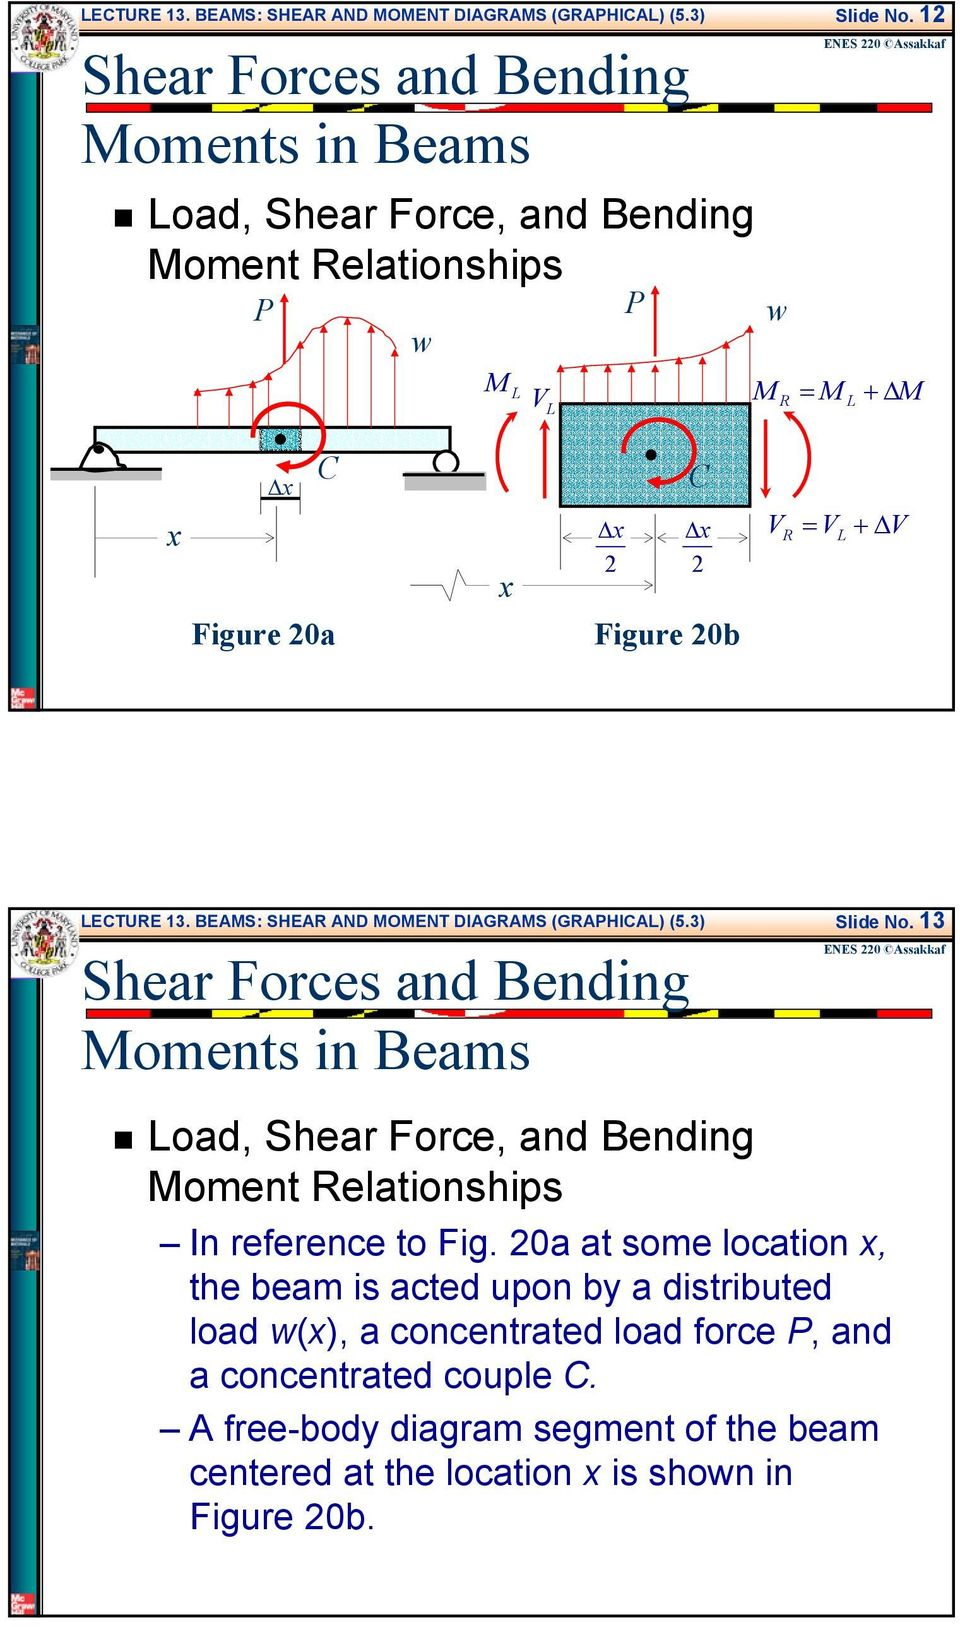 Beams Shear And Moment Diagrams Graphical Pdf Bending 0a At Some Location The Beam Is Acted Upon By A Distributed Load W